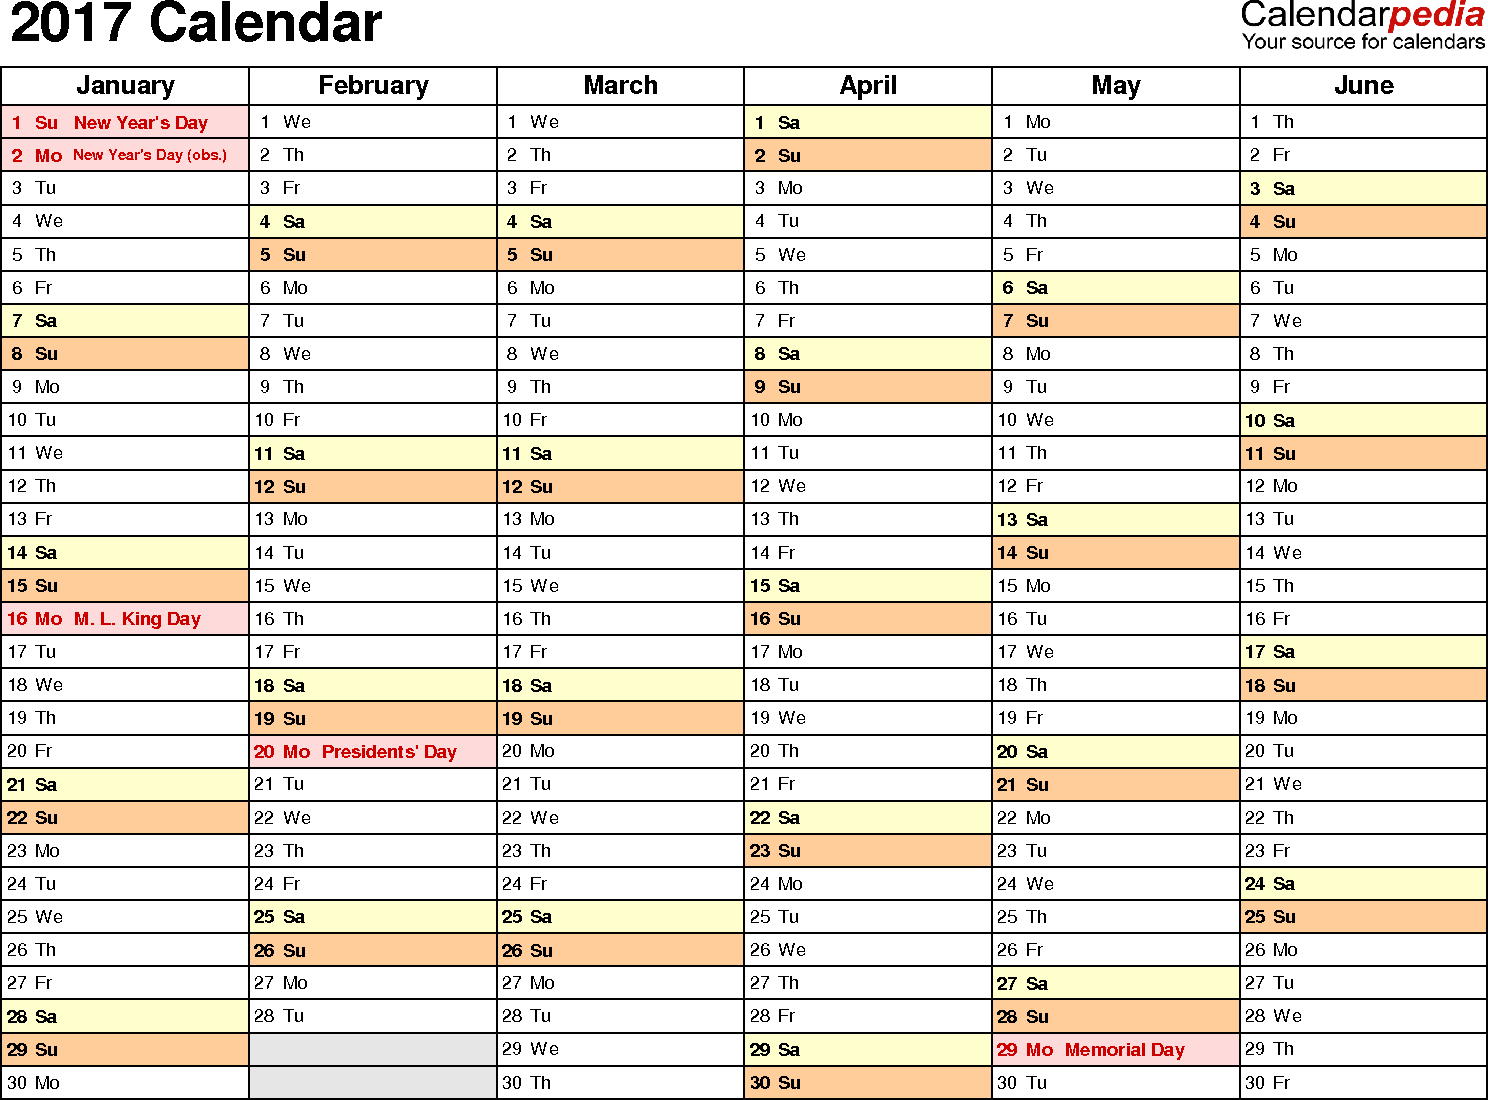 Ediblewildsus  Seductive  Calendar  Download  Free Printable Excel Templates Xls With Likable Template   Calendar For Excel Months Horizontally  Pages Landscape Orientation With Beauteous How To Find Difference Between Two Columns In Excel Also Excel Vba New Workbook In Addition Excel File Disappeared And Excel Qm Add In As Well As X Bar Chart In Excel Additionally Excel Sign Up Sheet Template From Calendarpediacom With Ediblewildsus  Likable  Calendar  Download  Free Printable Excel Templates Xls With Beauteous Template   Calendar For Excel Months Horizontally  Pages Landscape Orientation And Seductive How To Find Difference Between Two Columns In Excel Also Excel Vba New Workbook In Addition Excel File Disappeared From Calendarpediacom